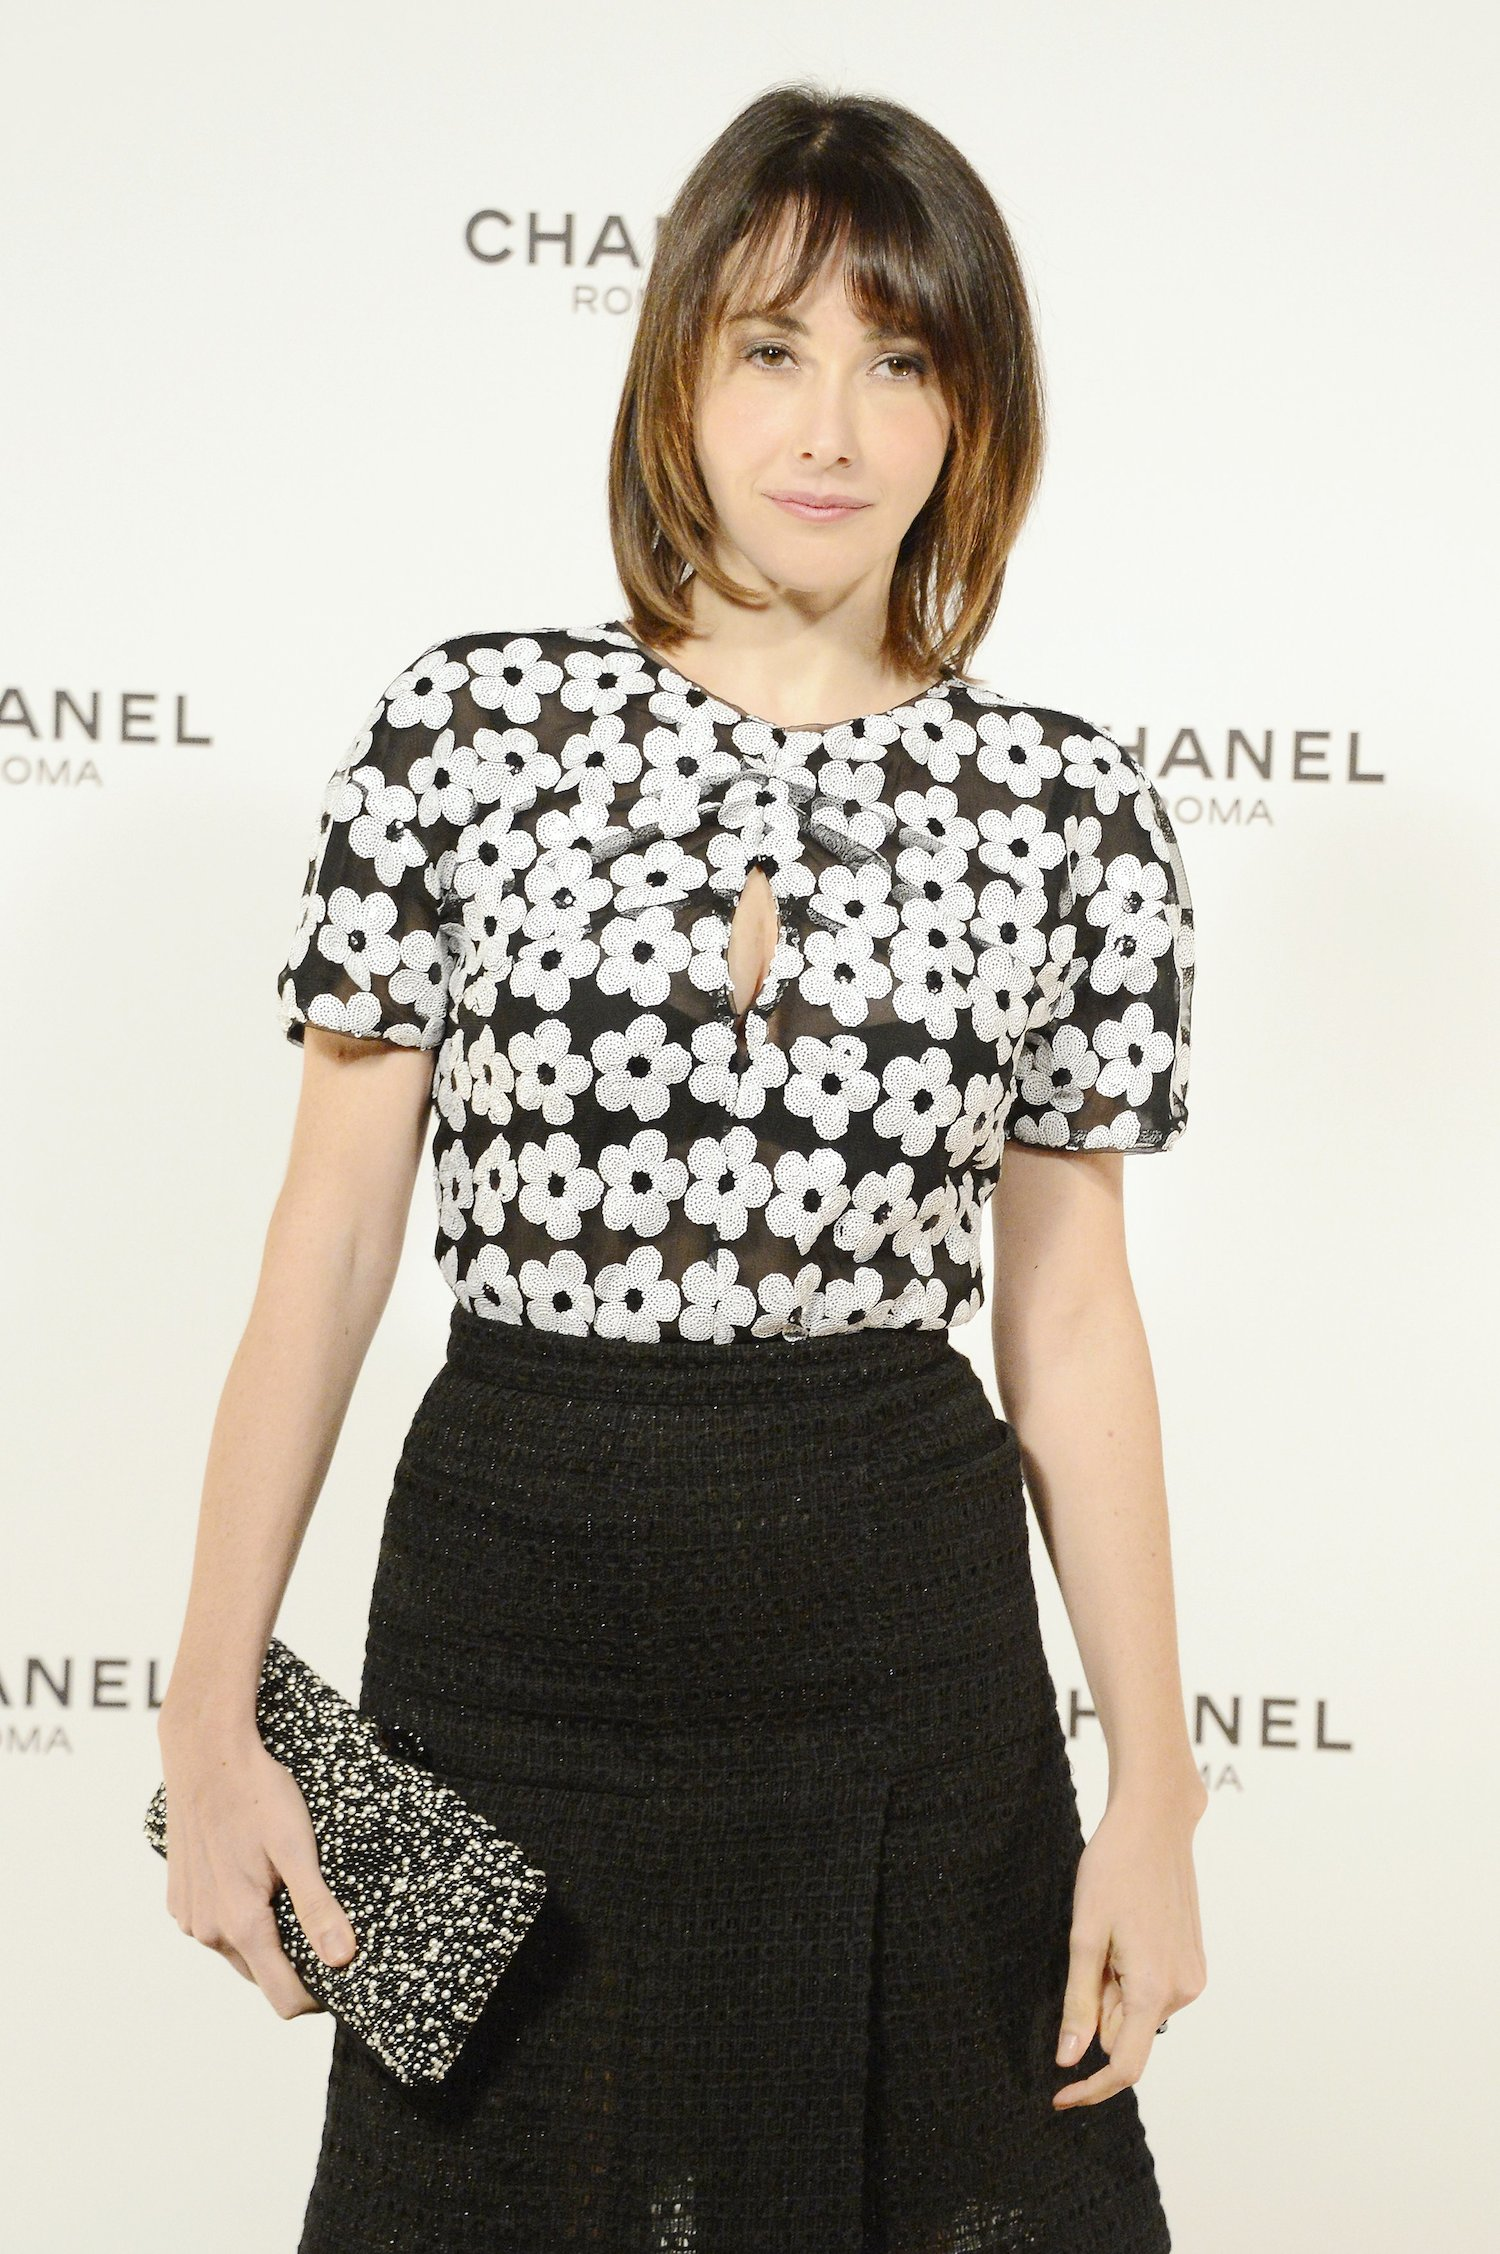 Chanel Rome Party Opening - Anita Caprioli